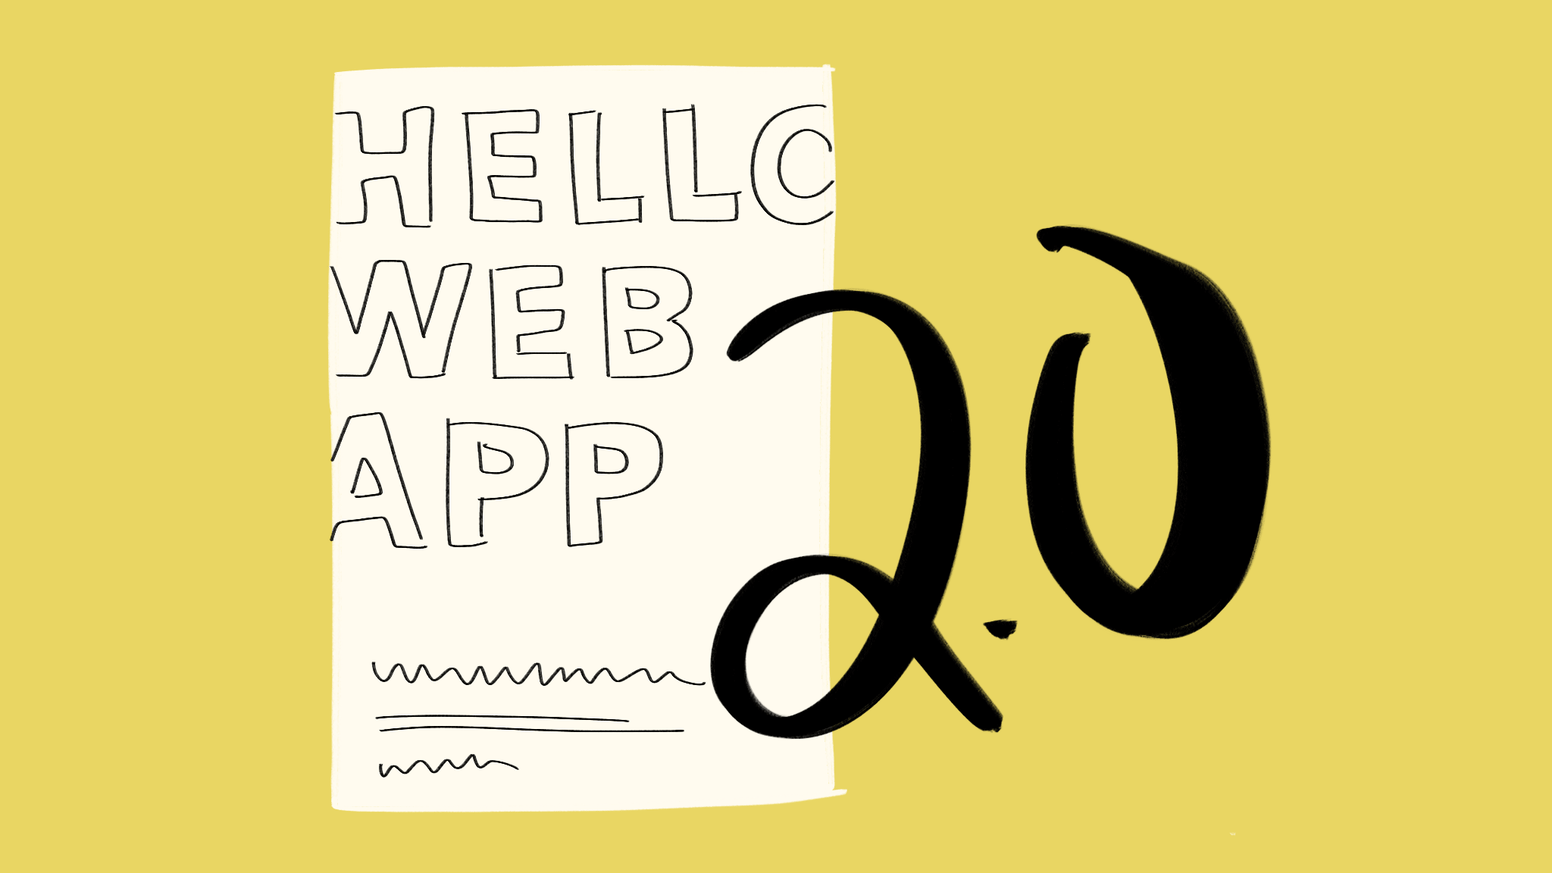 Hello Web App 2 0: Build Your First Web App with Django 2 by Tracy